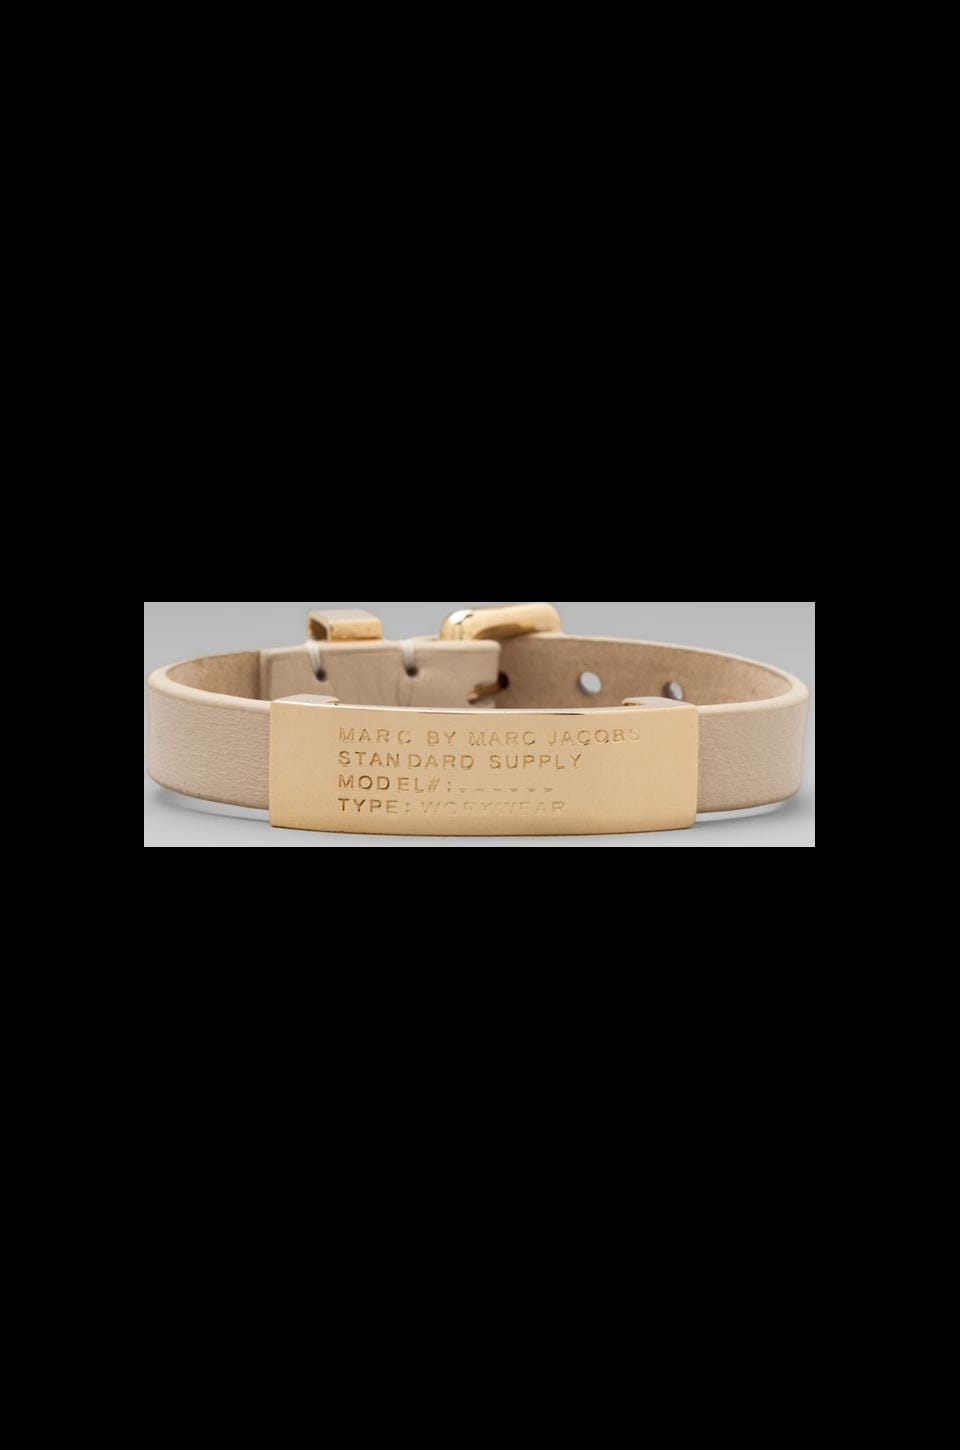 Marc by Marc Jacobs Bracelet Standard Supply Id en Light Sand/ Oro